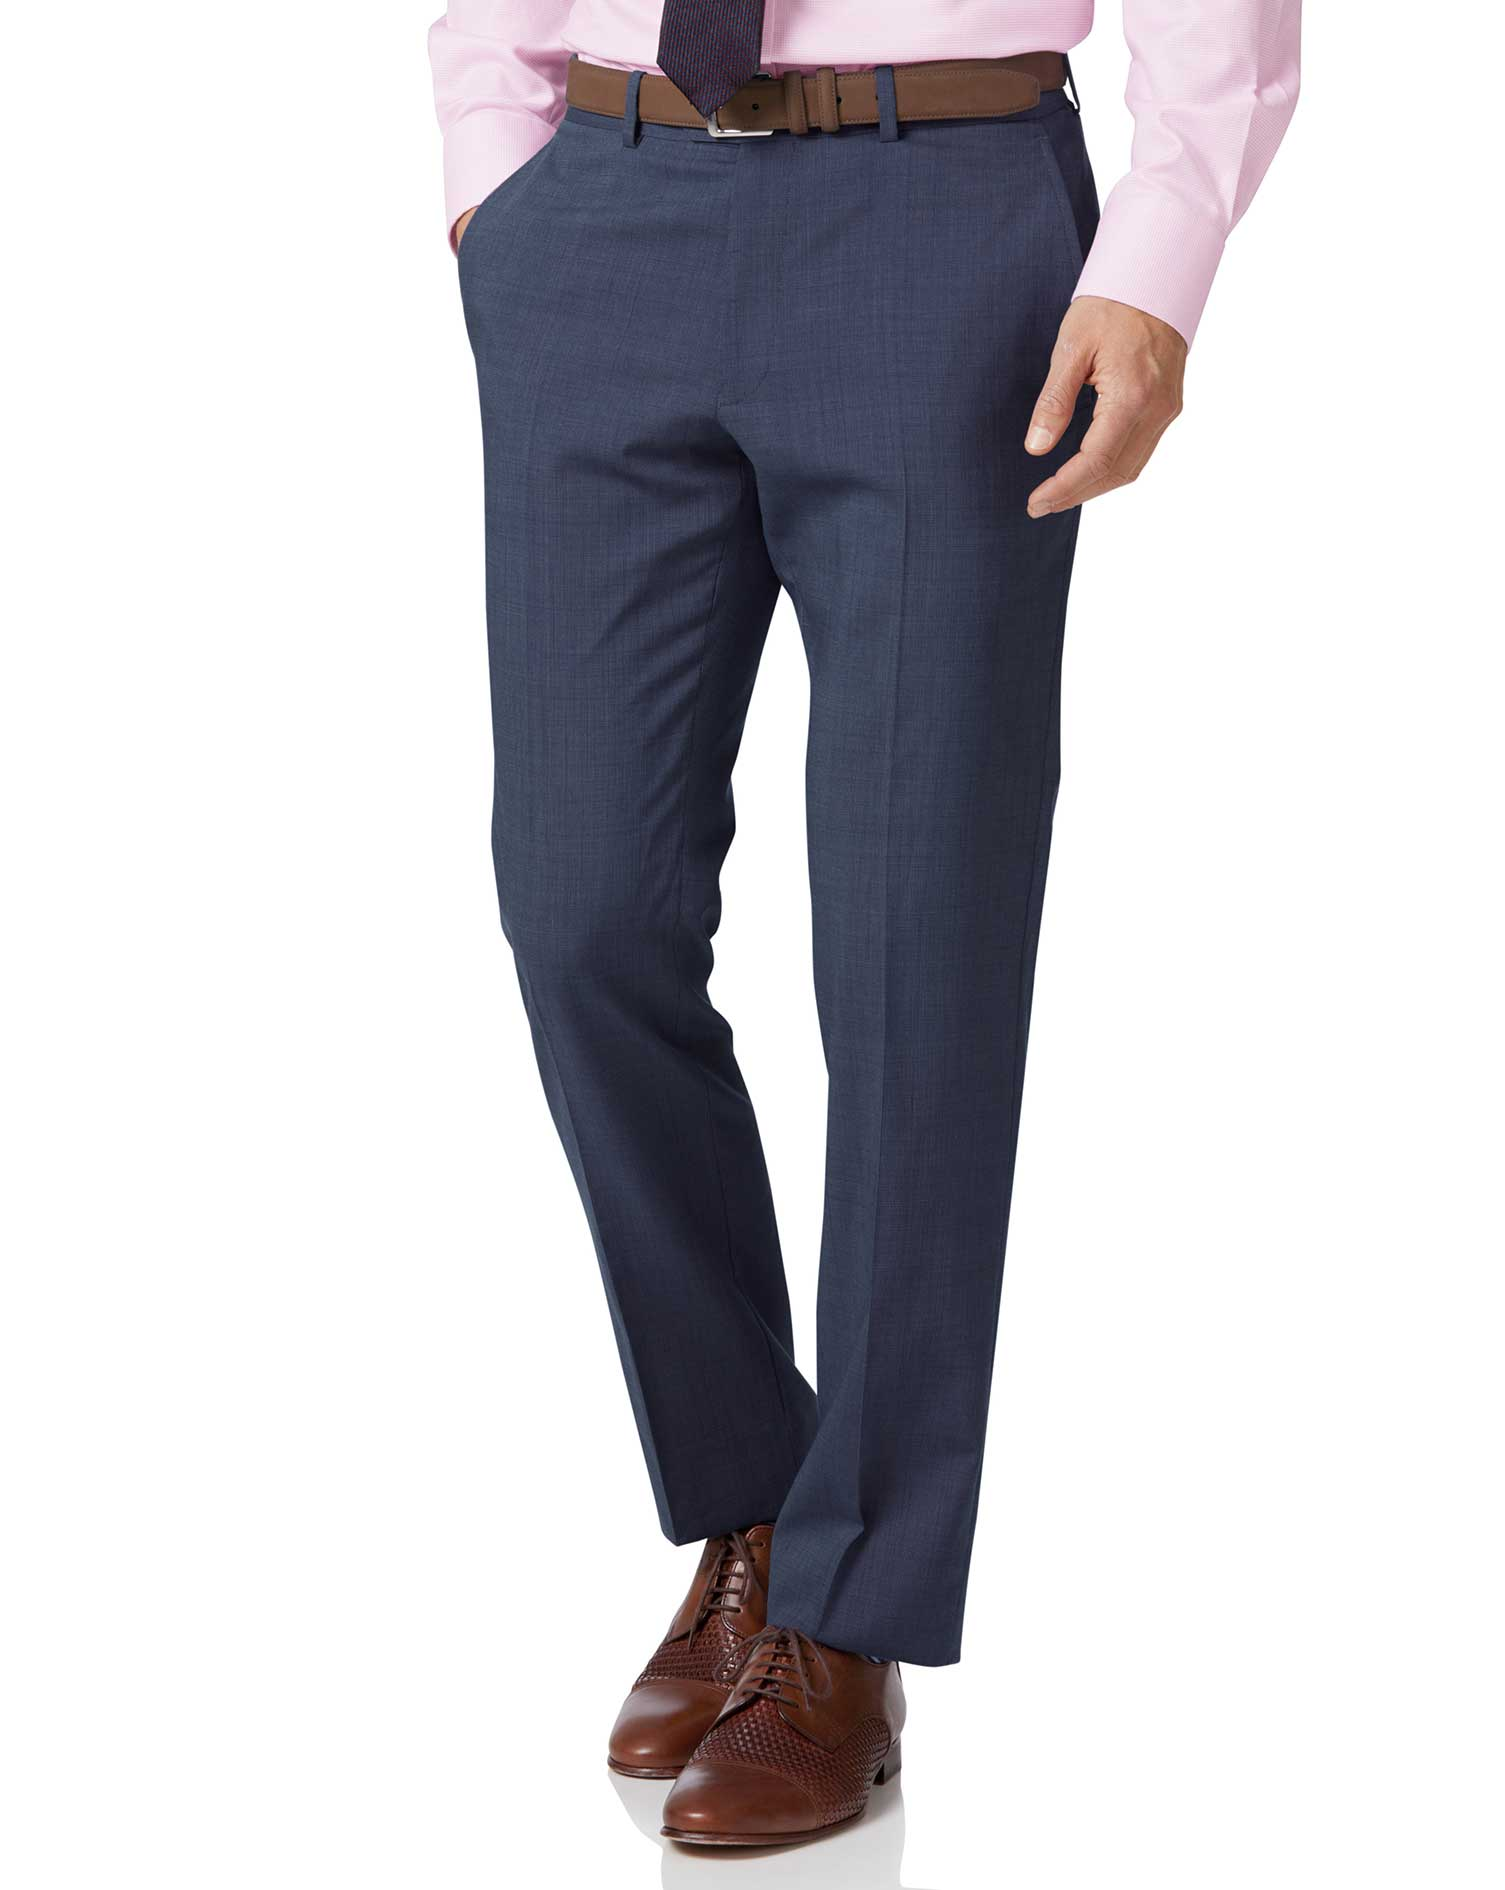 Light Blue Slim Fit Step Weave Suit Trousers Size W40 L38 by Charles Tyrwhitt